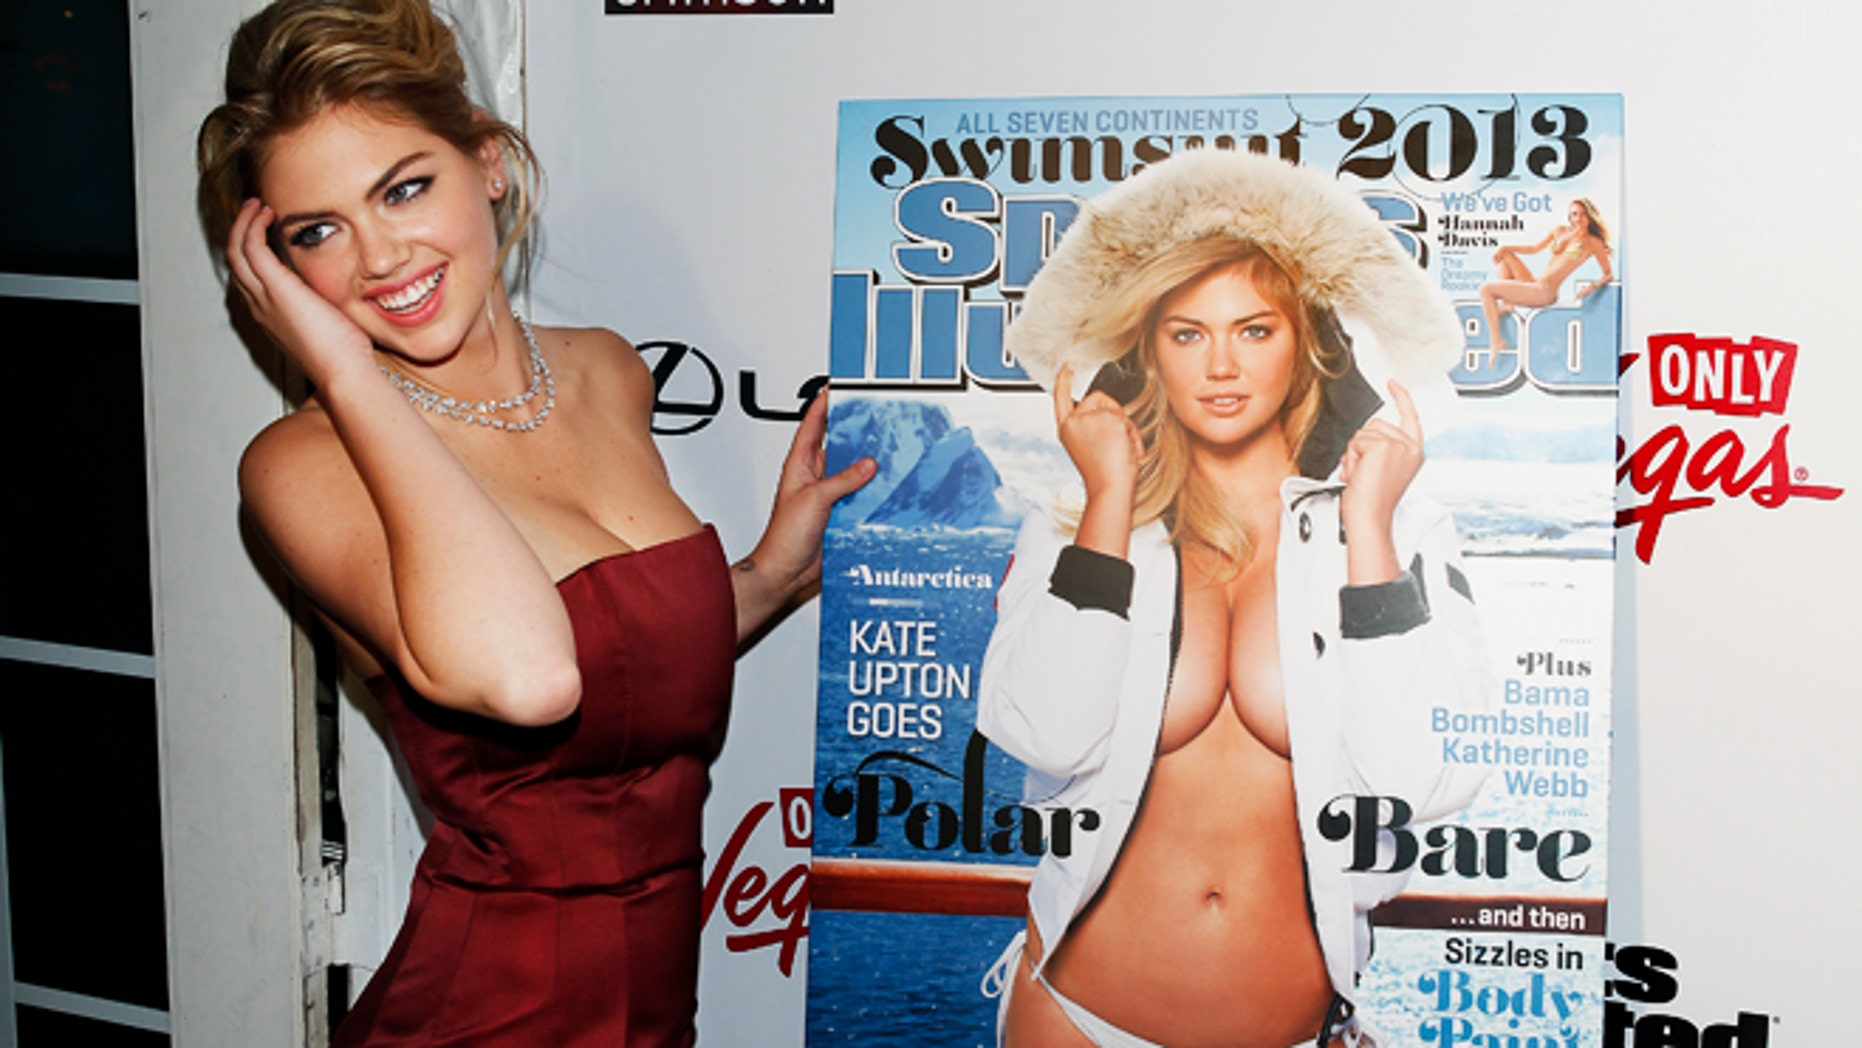 Supermodel Kate Upton poses at the launch party of the Sports Illustrated's 2013 Swimsuit issue, which features her on the cover, in New York February 12, 2013.  REUTERS/Carlo Allegri  (UNITED STATES - Tags: ENTERTAINMENT SPORT) - RTR3DPHG